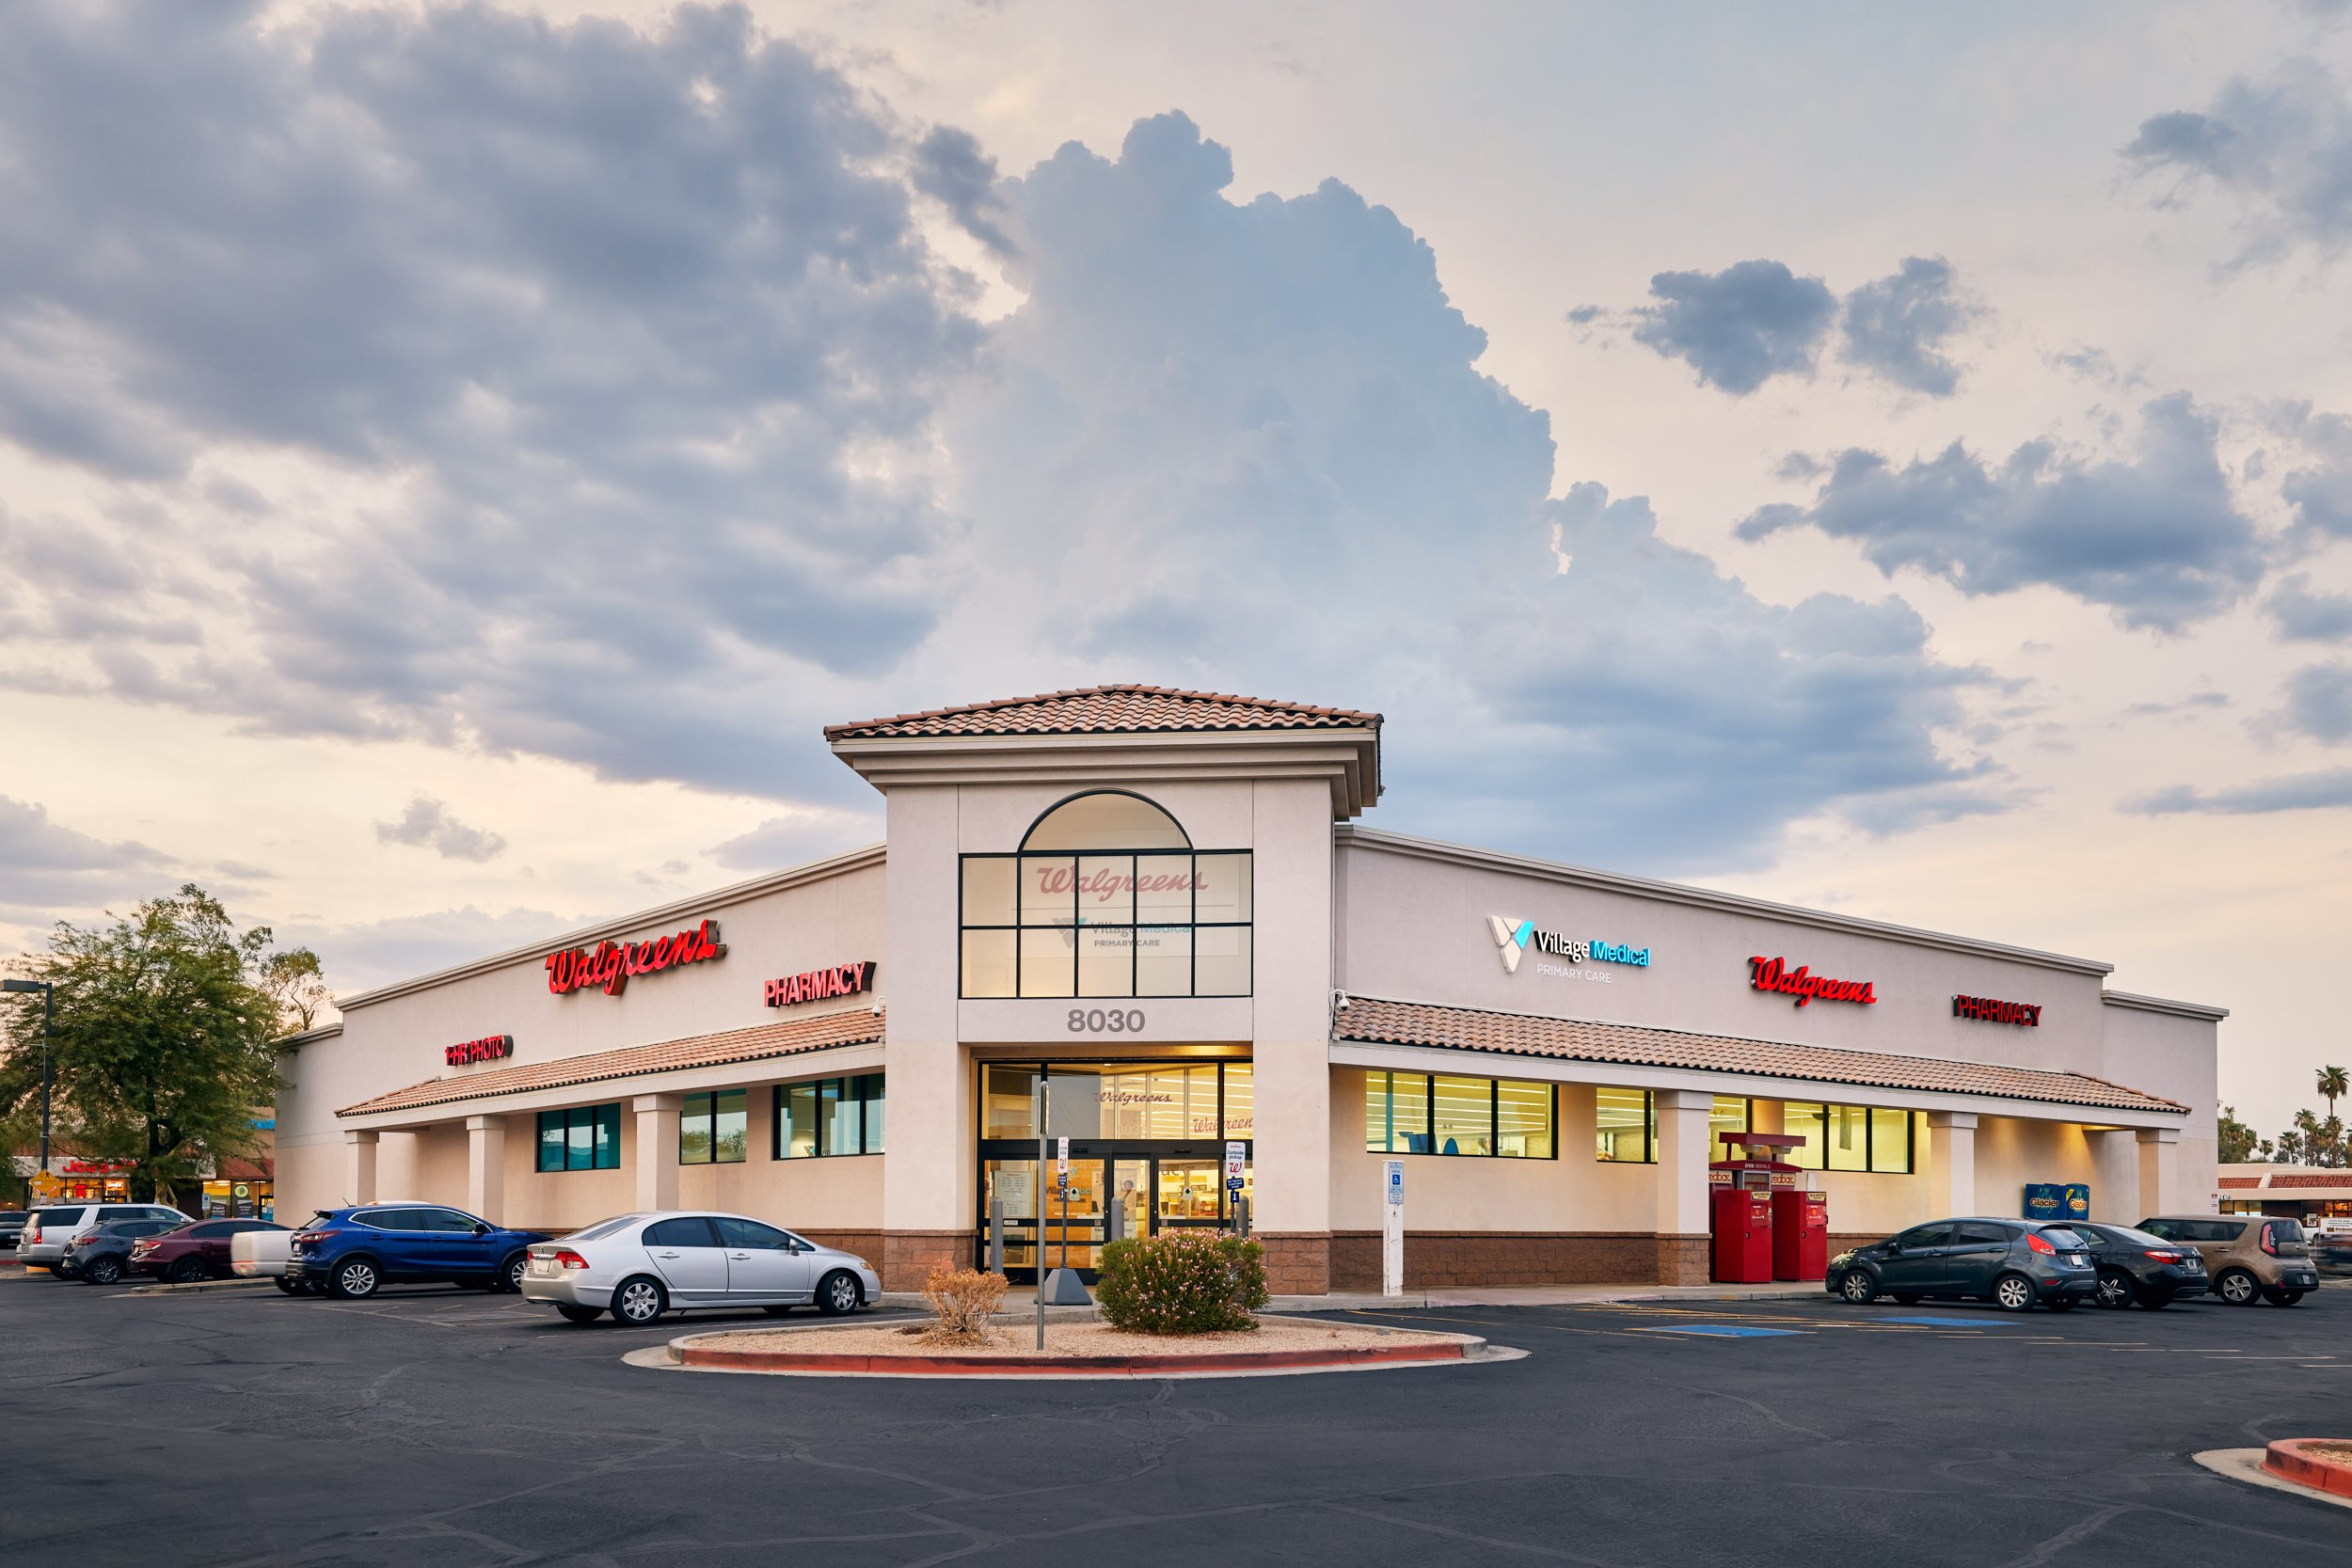 Village Medical at Walgreens - Kissimmee East - 3001 Simpson Rd., Suite 101 Kissimmee, FL, 34744.